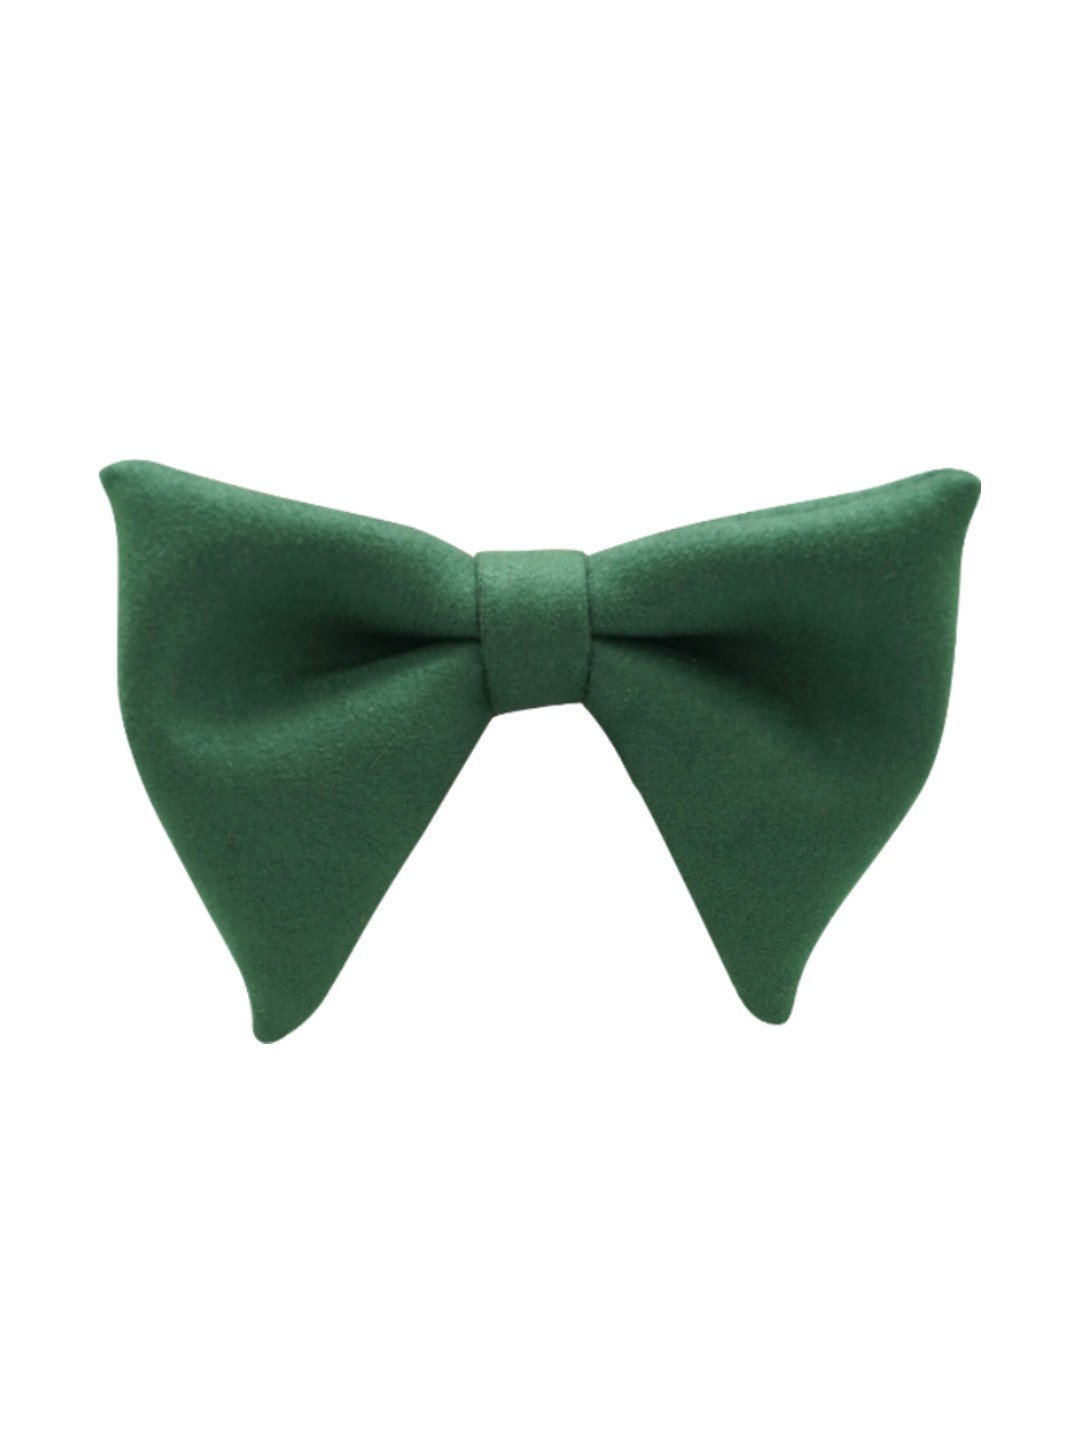 Solid Green Suede Butterfly Bow tie